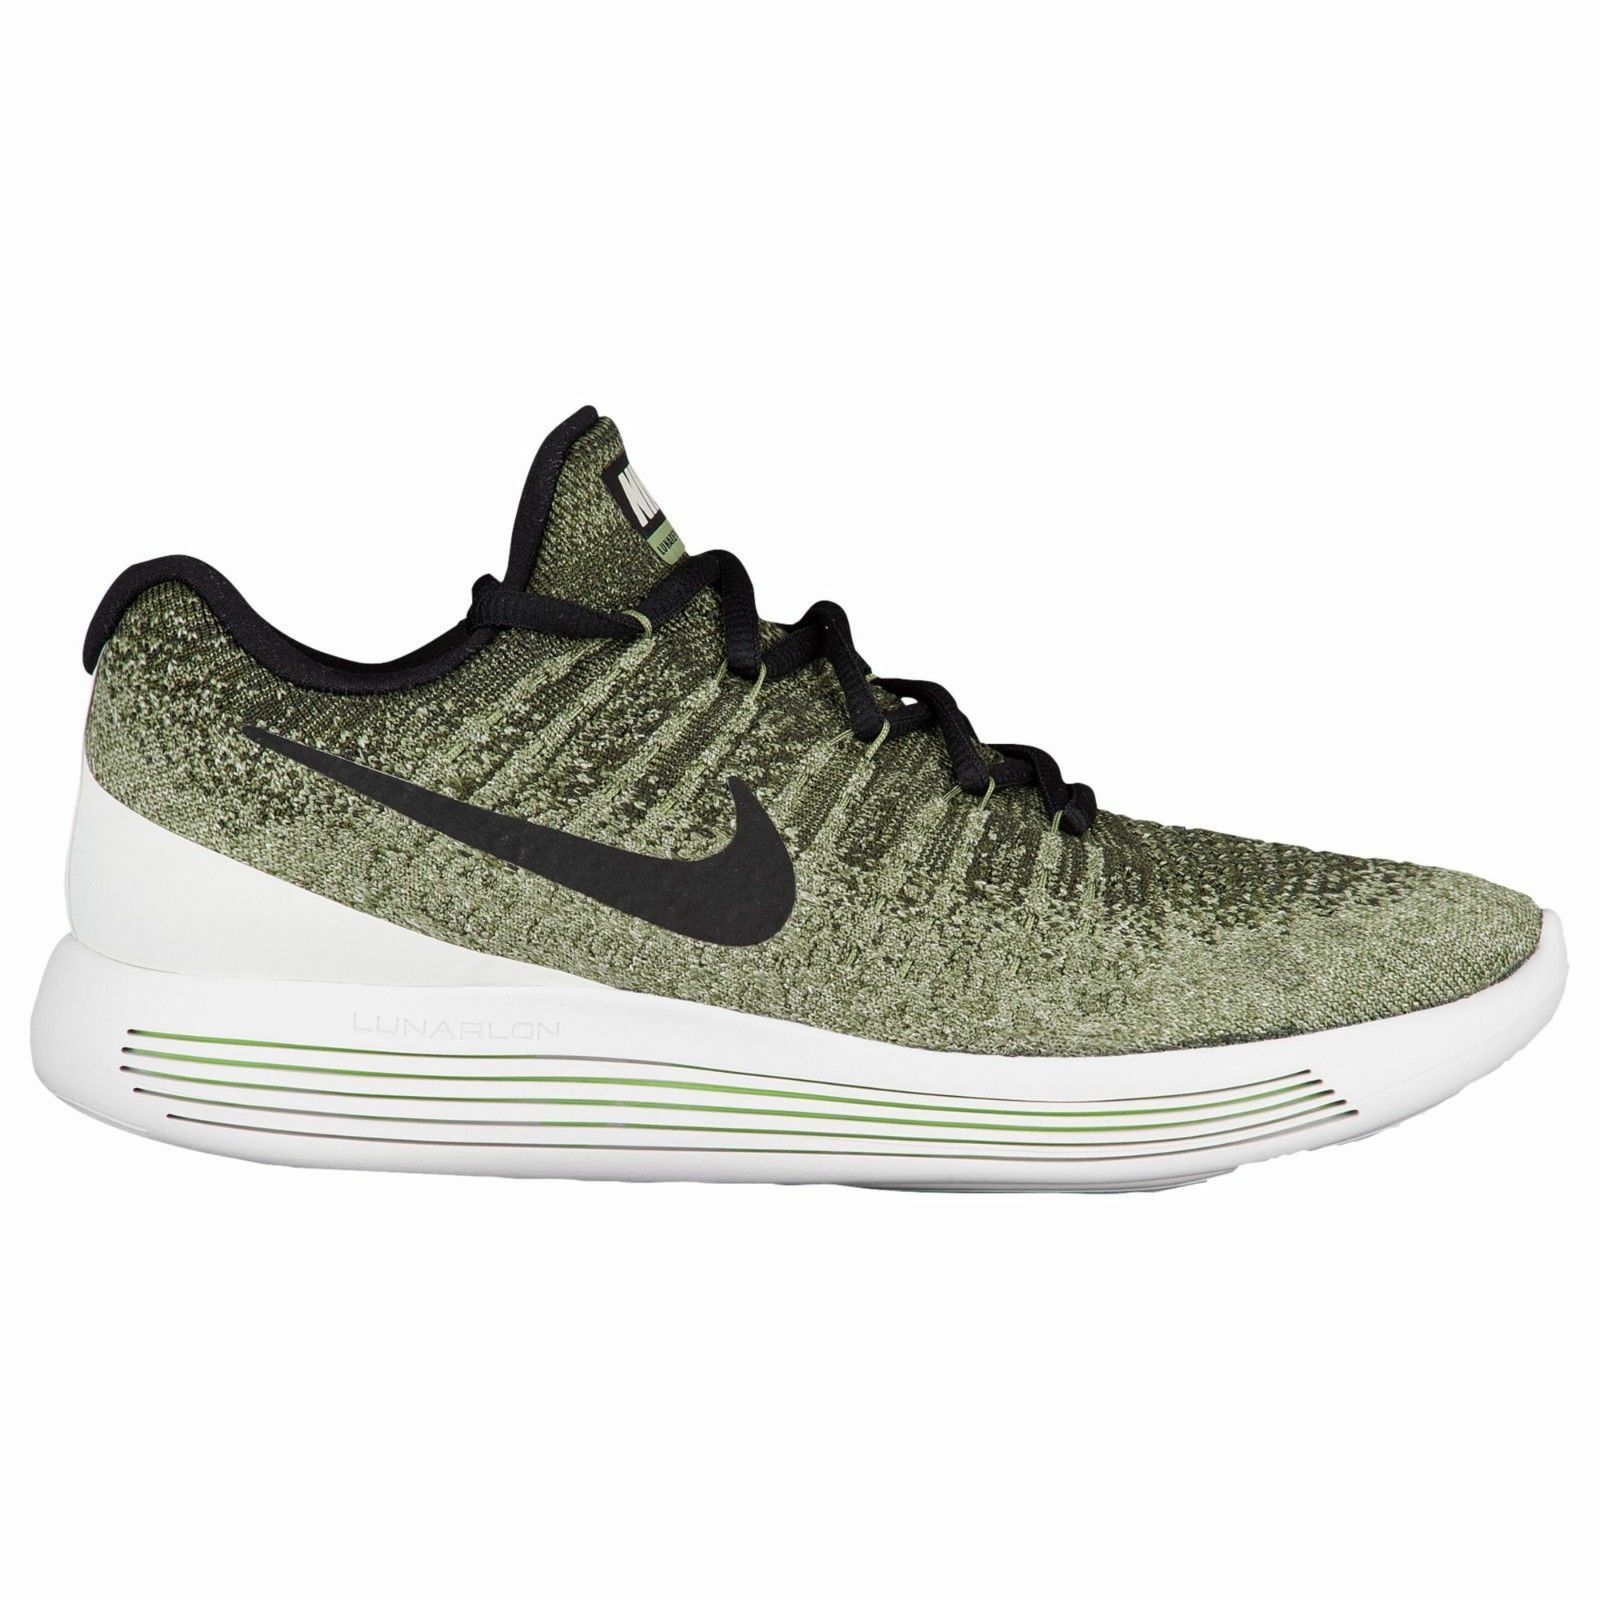 Nike Lunarepic Low Flyknit 2 Mens 863779-300 Rough Green Running Shoes Size 8.5